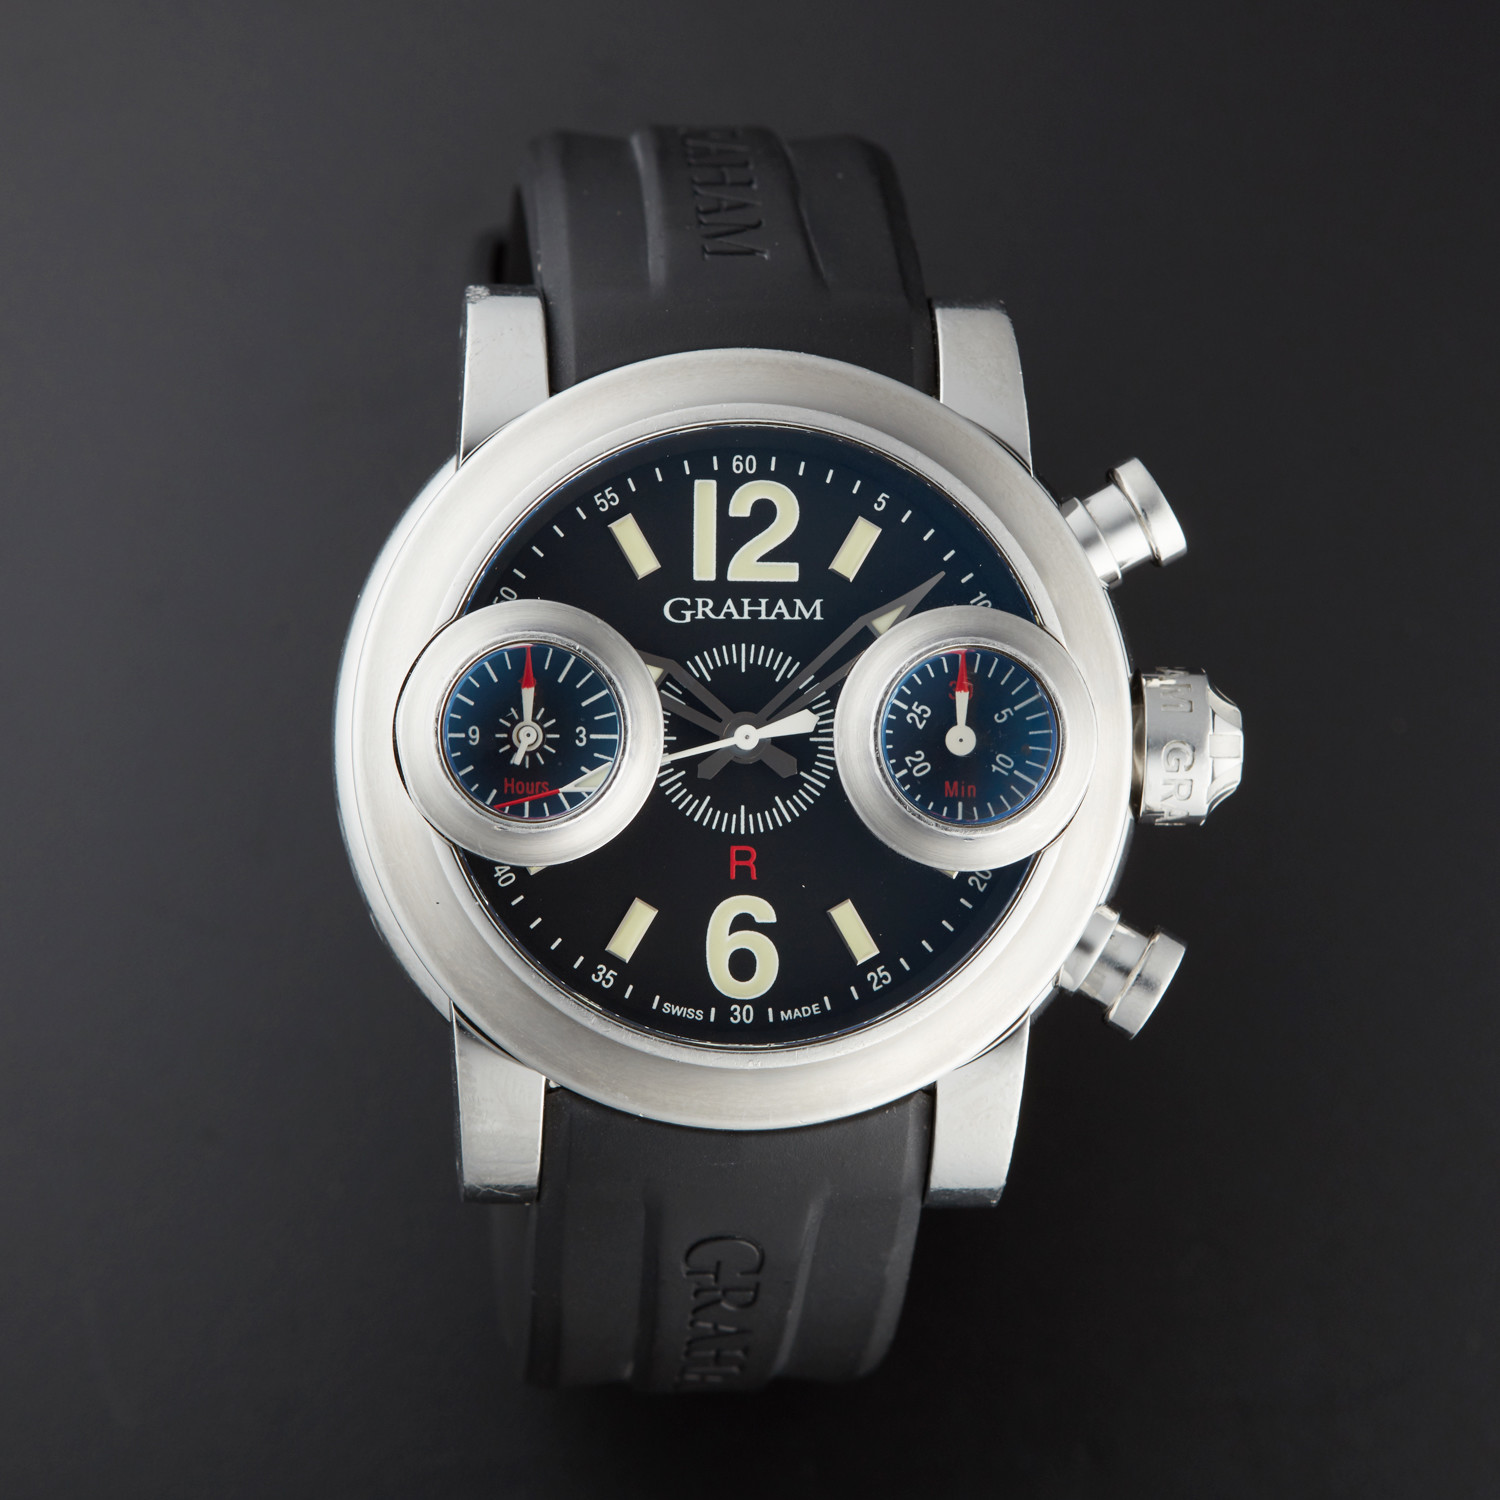 mjj mens from chronofighter uk vintage watches image graham